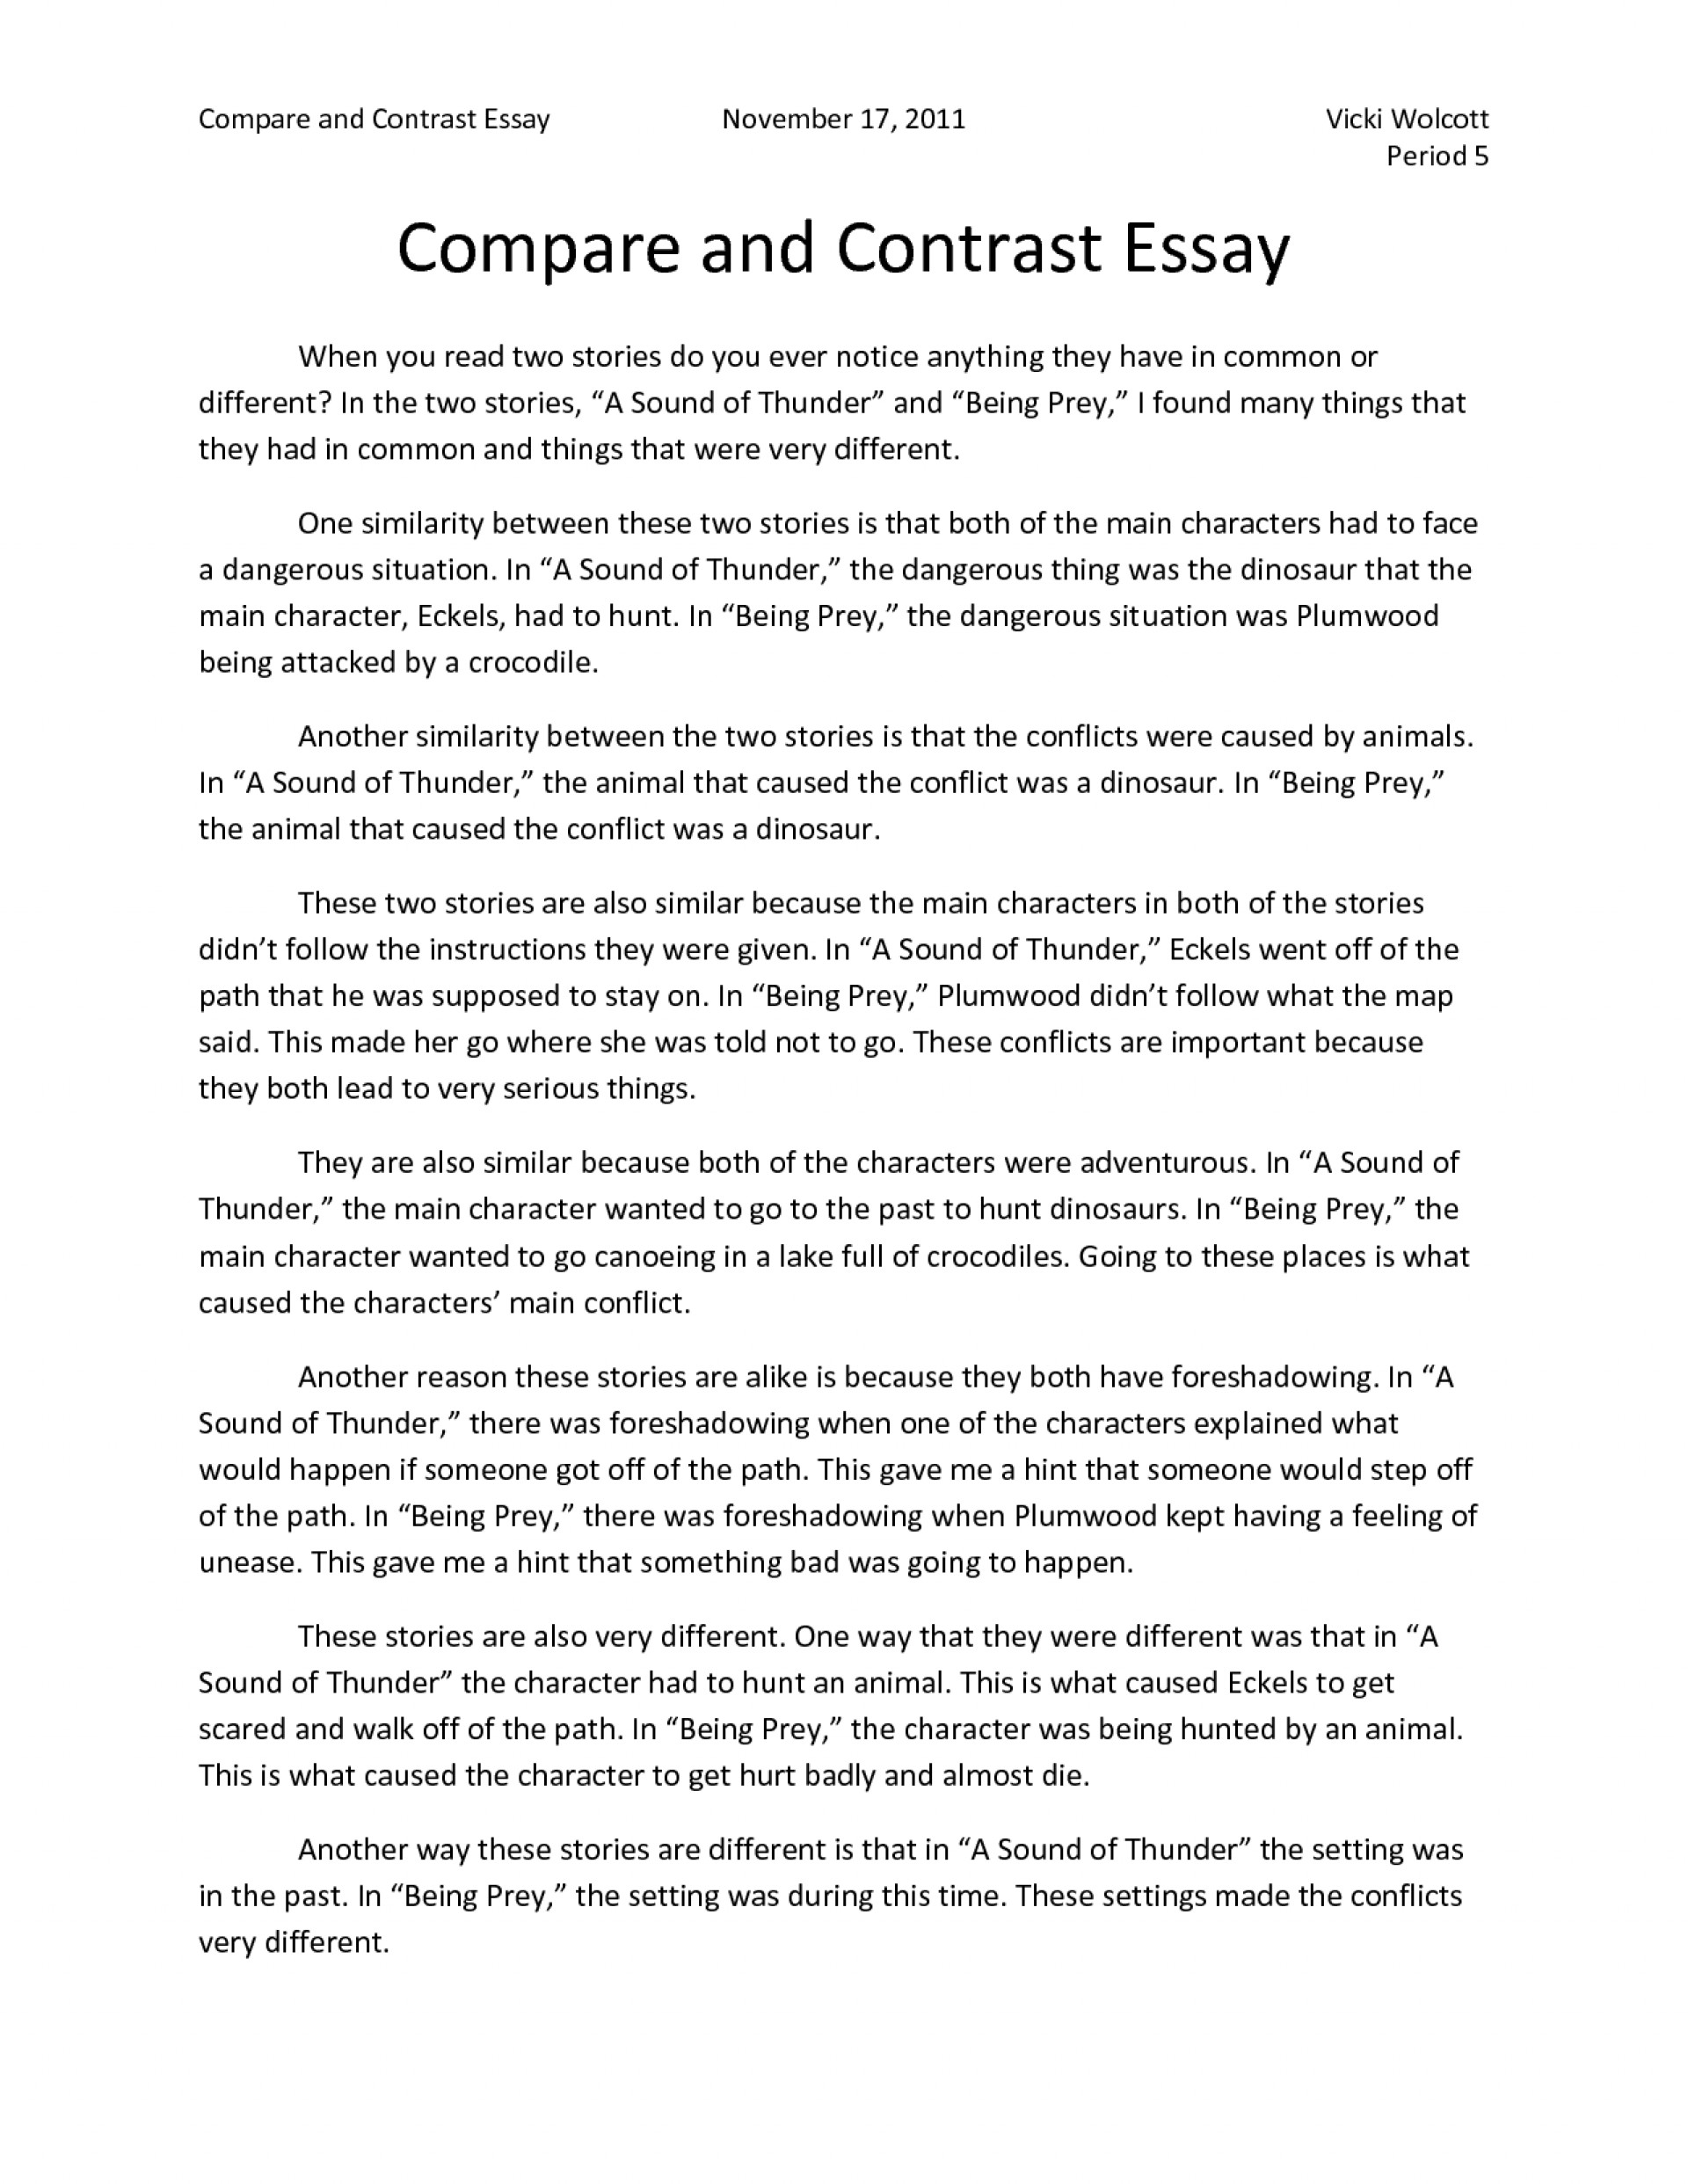 004 Essay Example Compare And Contrast Gallery Template Drawing Art Throughout College Examples Introduction Question Scholarship Free Edexcel Conclusion Frightening Topics For Students Rubric 4th Grade Ideas 7th 1920